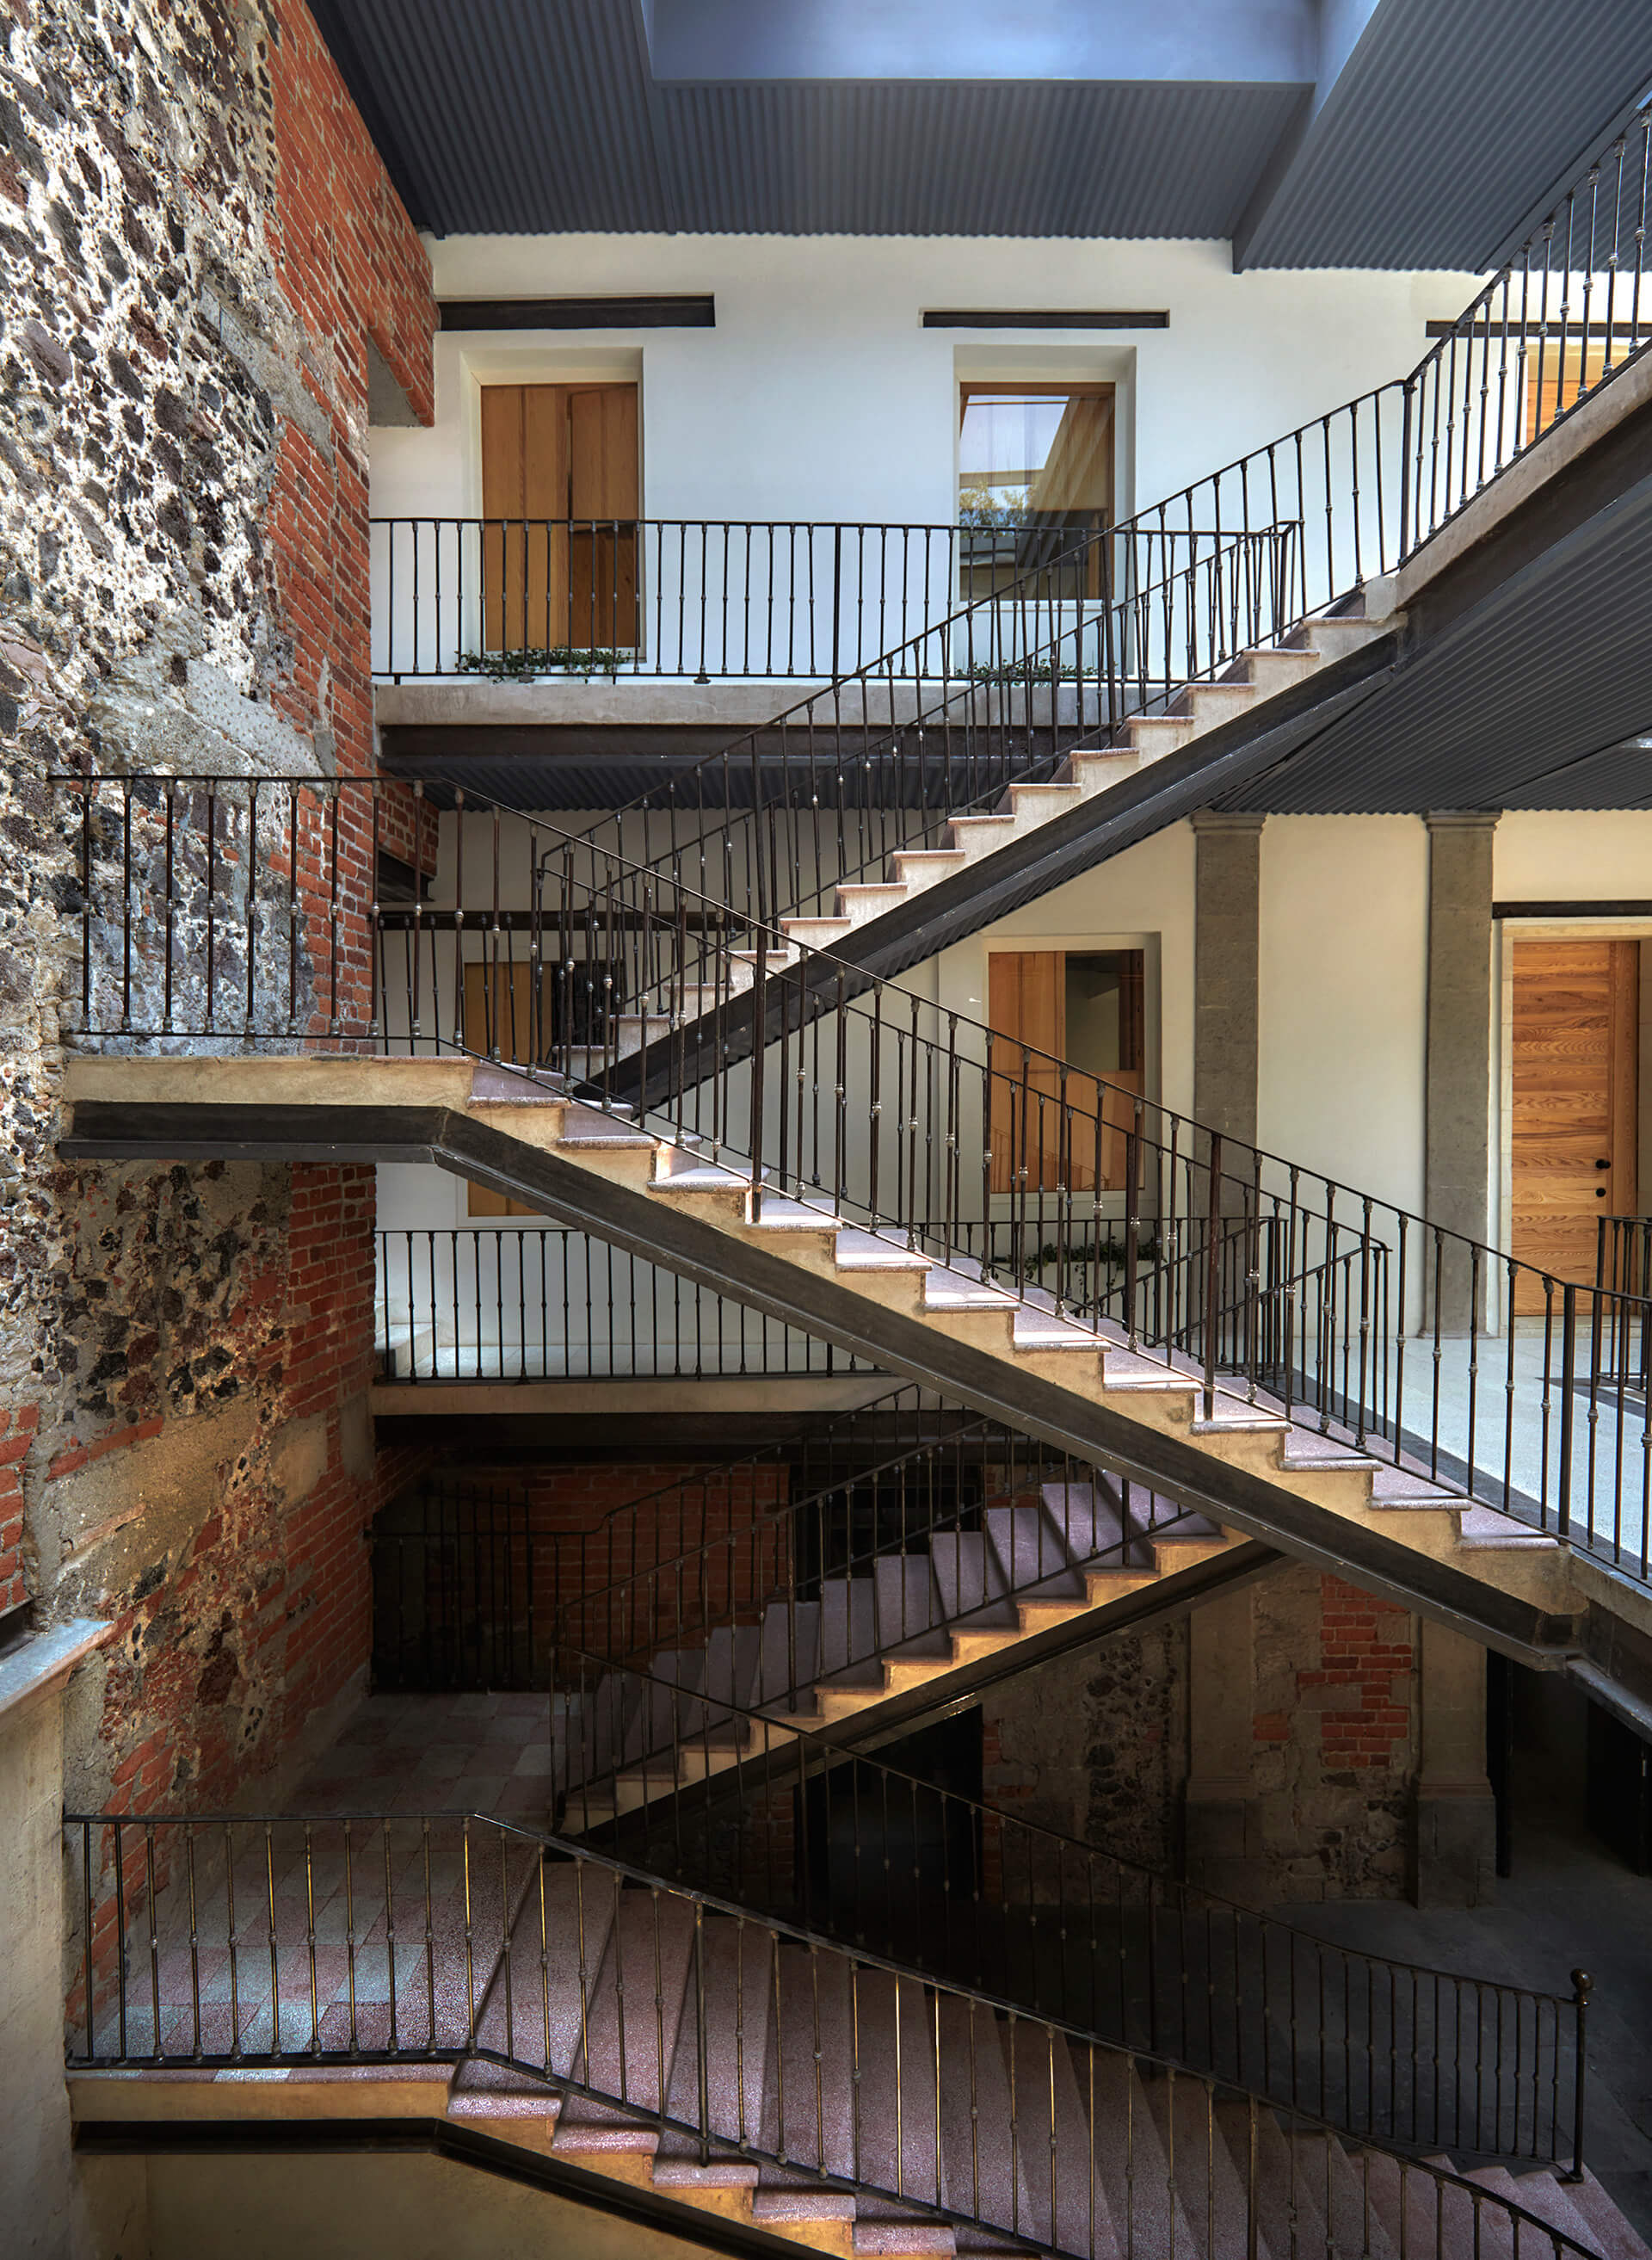 Staircase attached to a crumbling brick wall hints at its rich past | Círculo Mexicano | Ambrosi Etchegaray | STIRworld